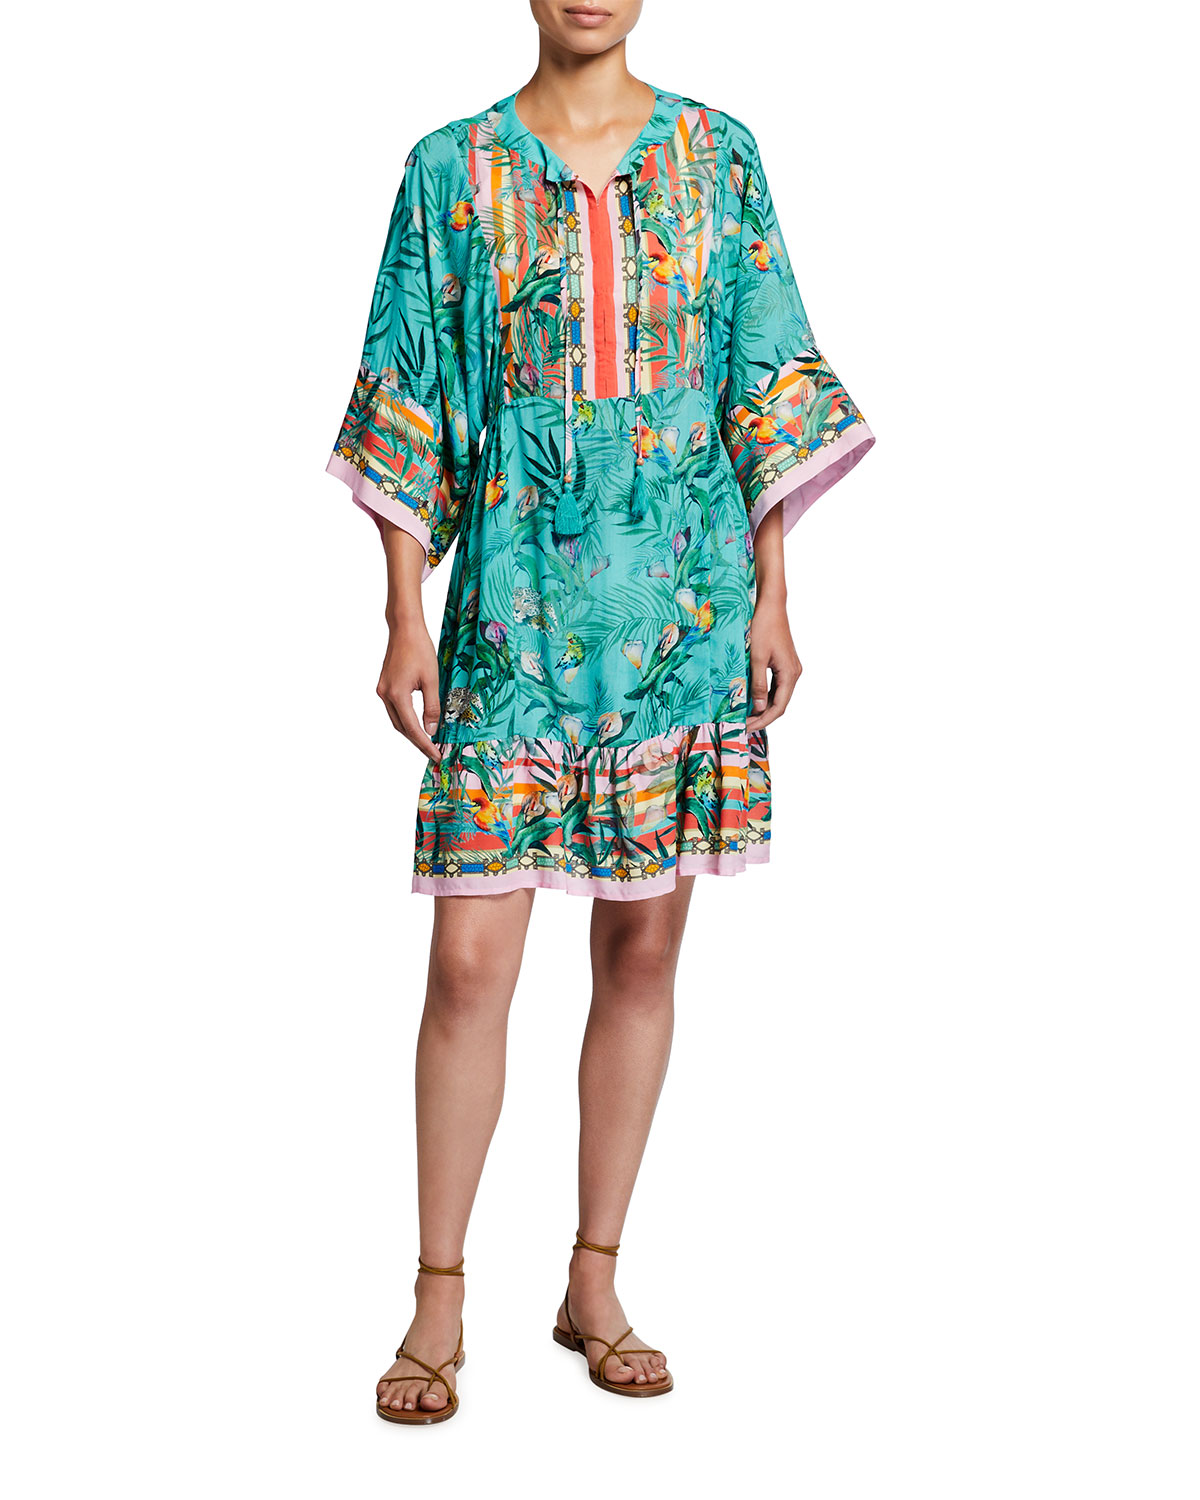 Johnny Was PLUS SIZE TAINA SHORT COVERUP DRESS